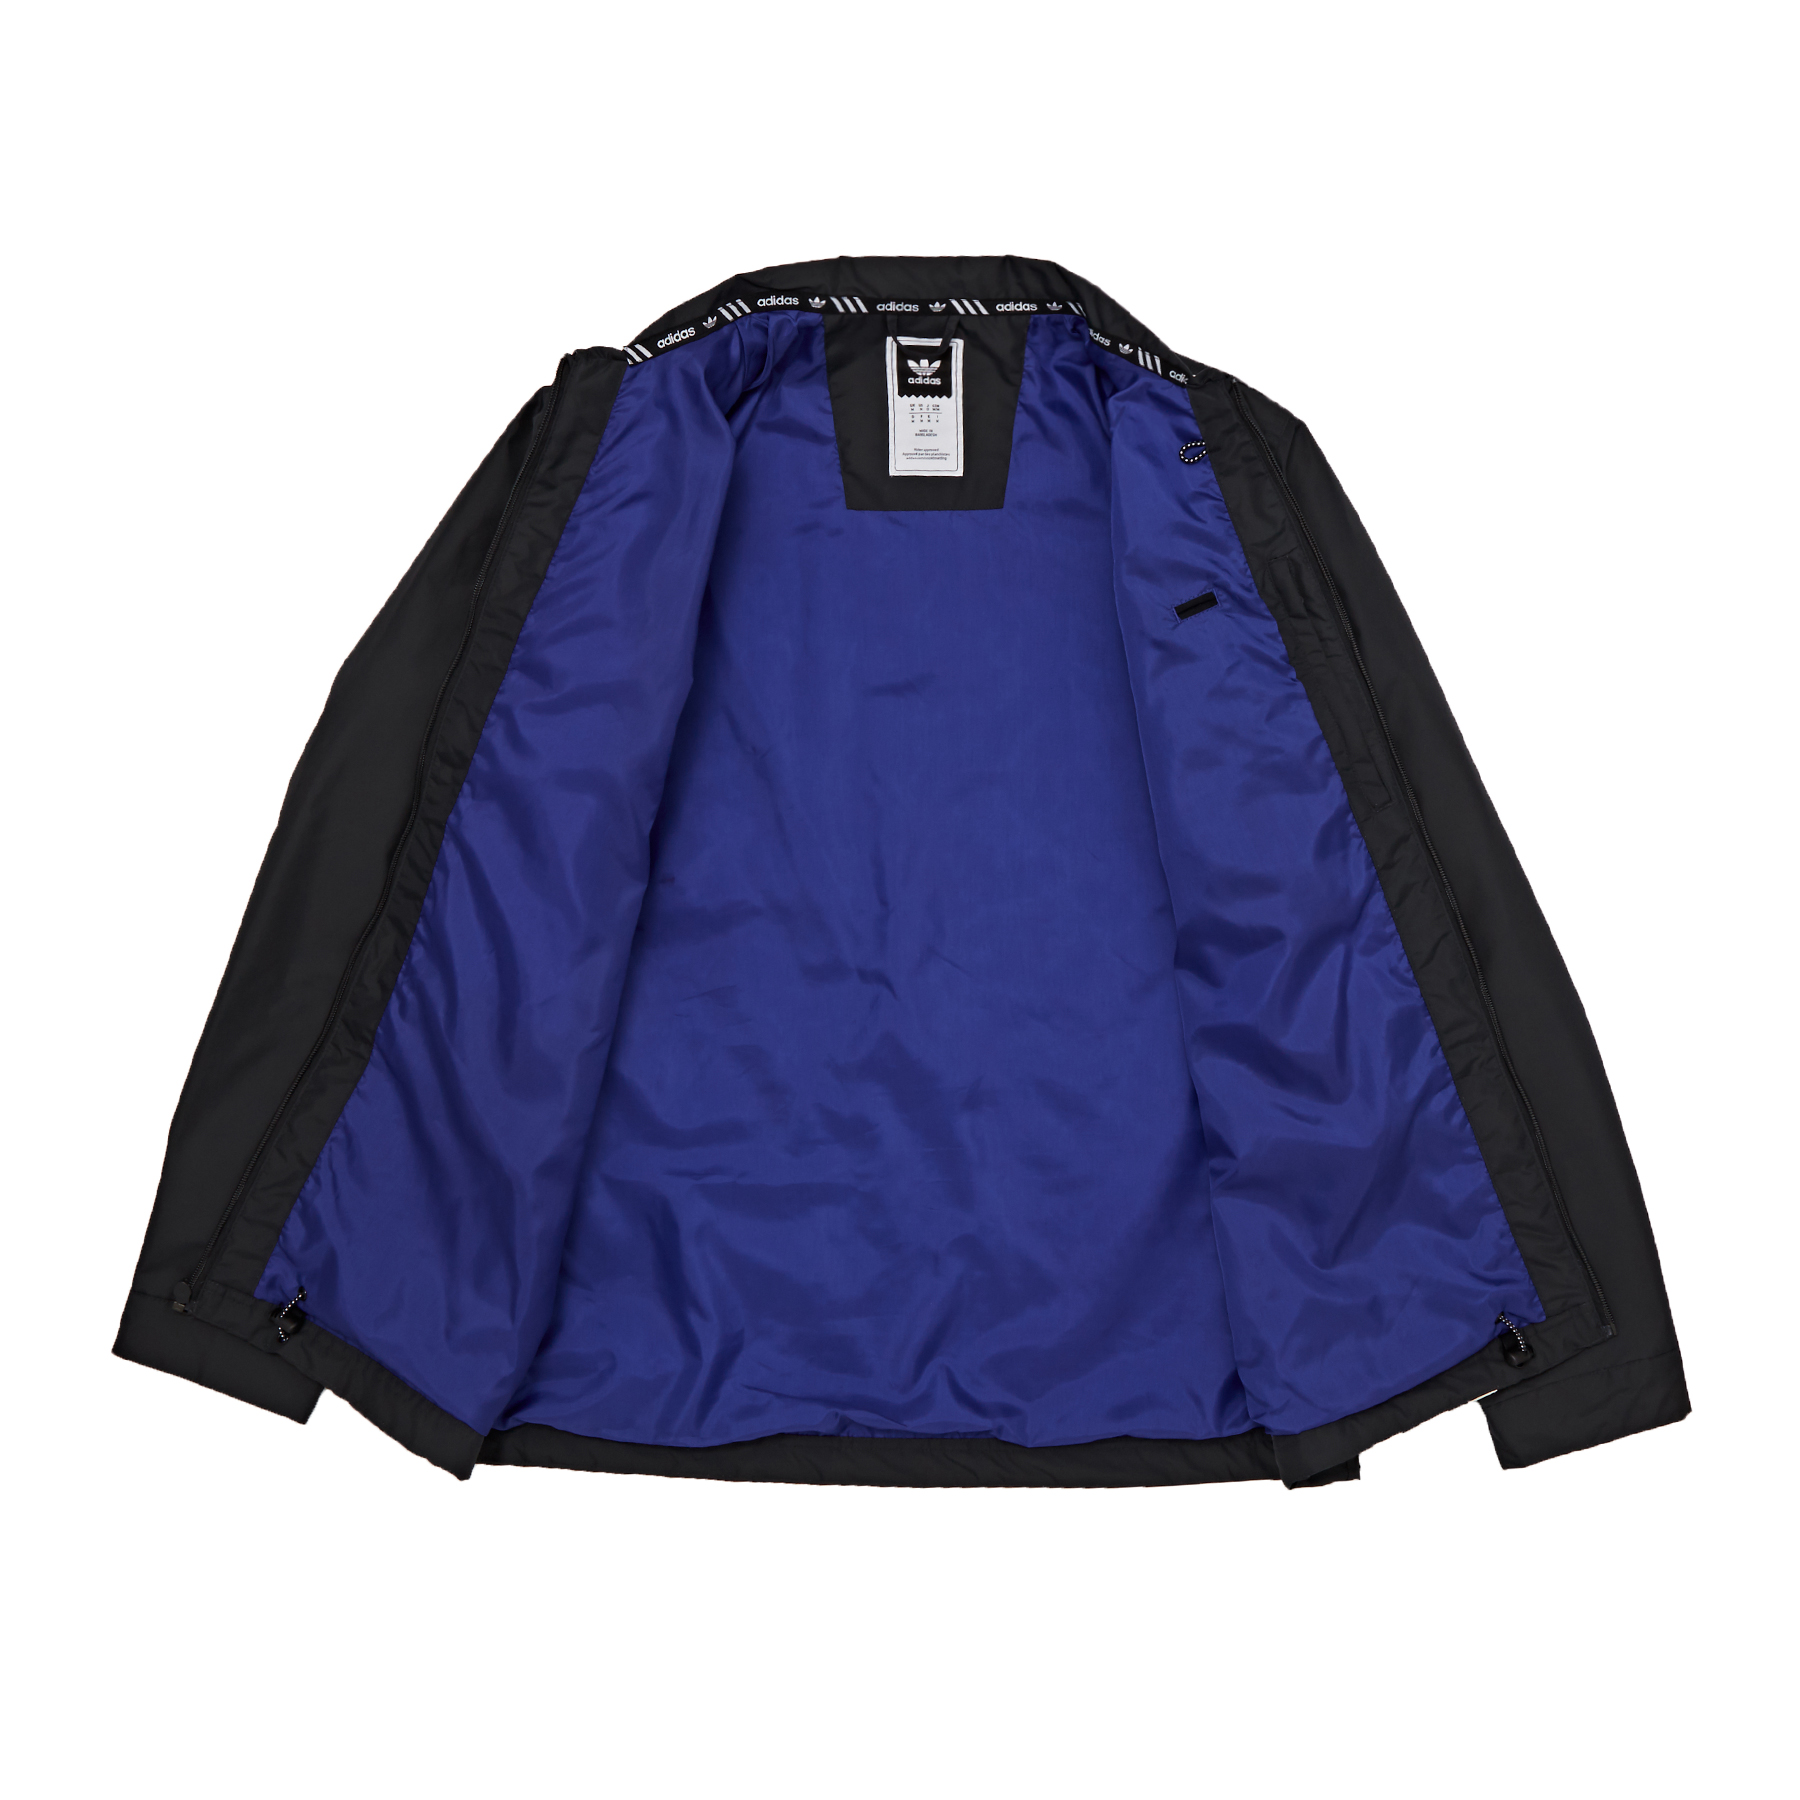 Adidas Snowboarding Civilian Snow Jacket | Free Delivery* on